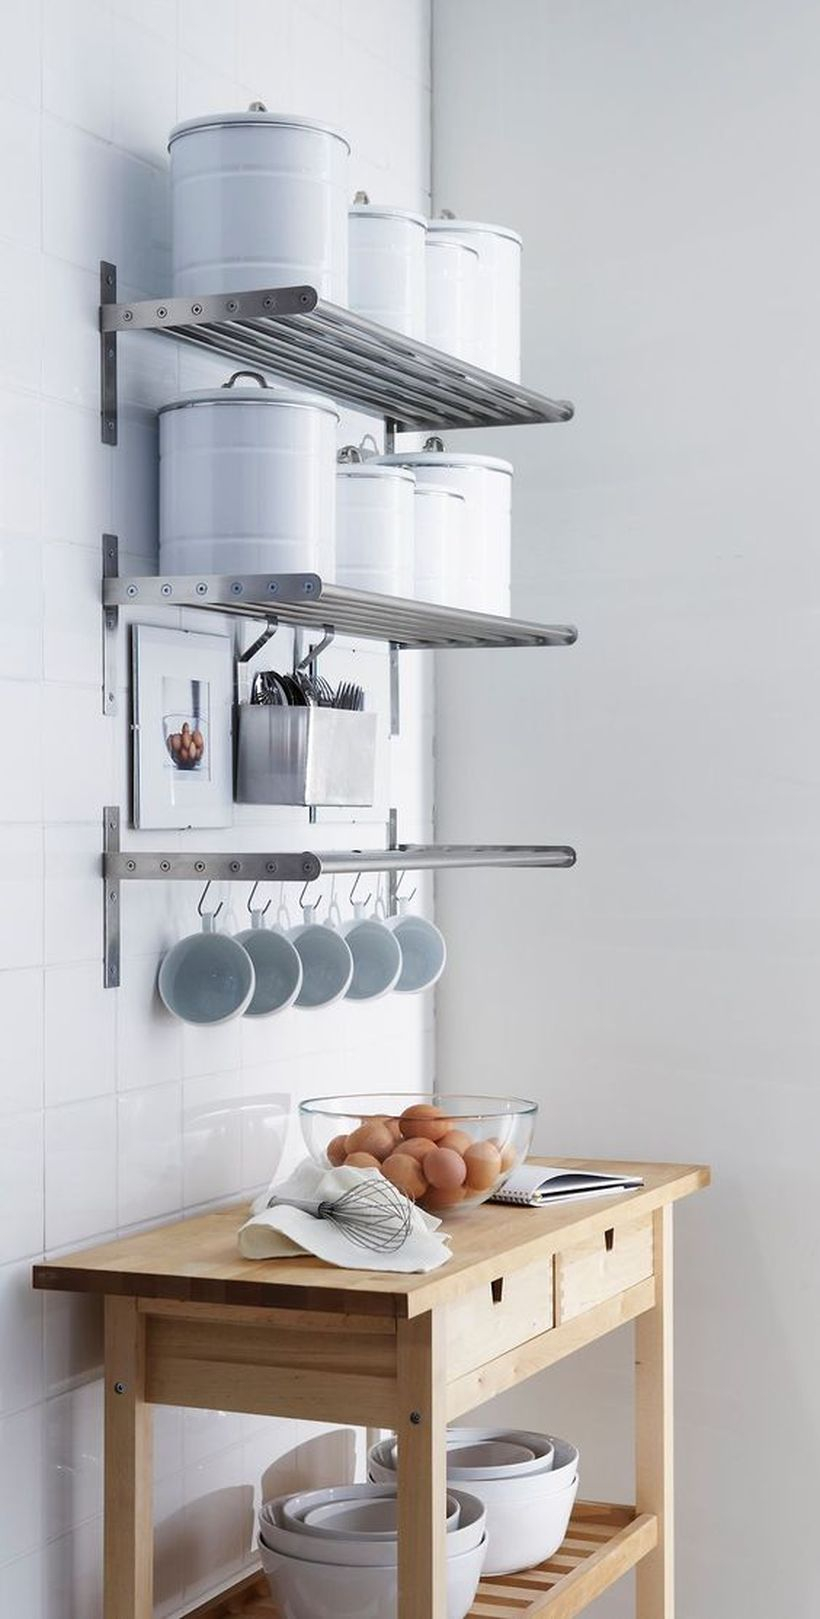 Hanging rack that made of metal to put some kitchen appliance and table with drawers and storage on below to store some bowls